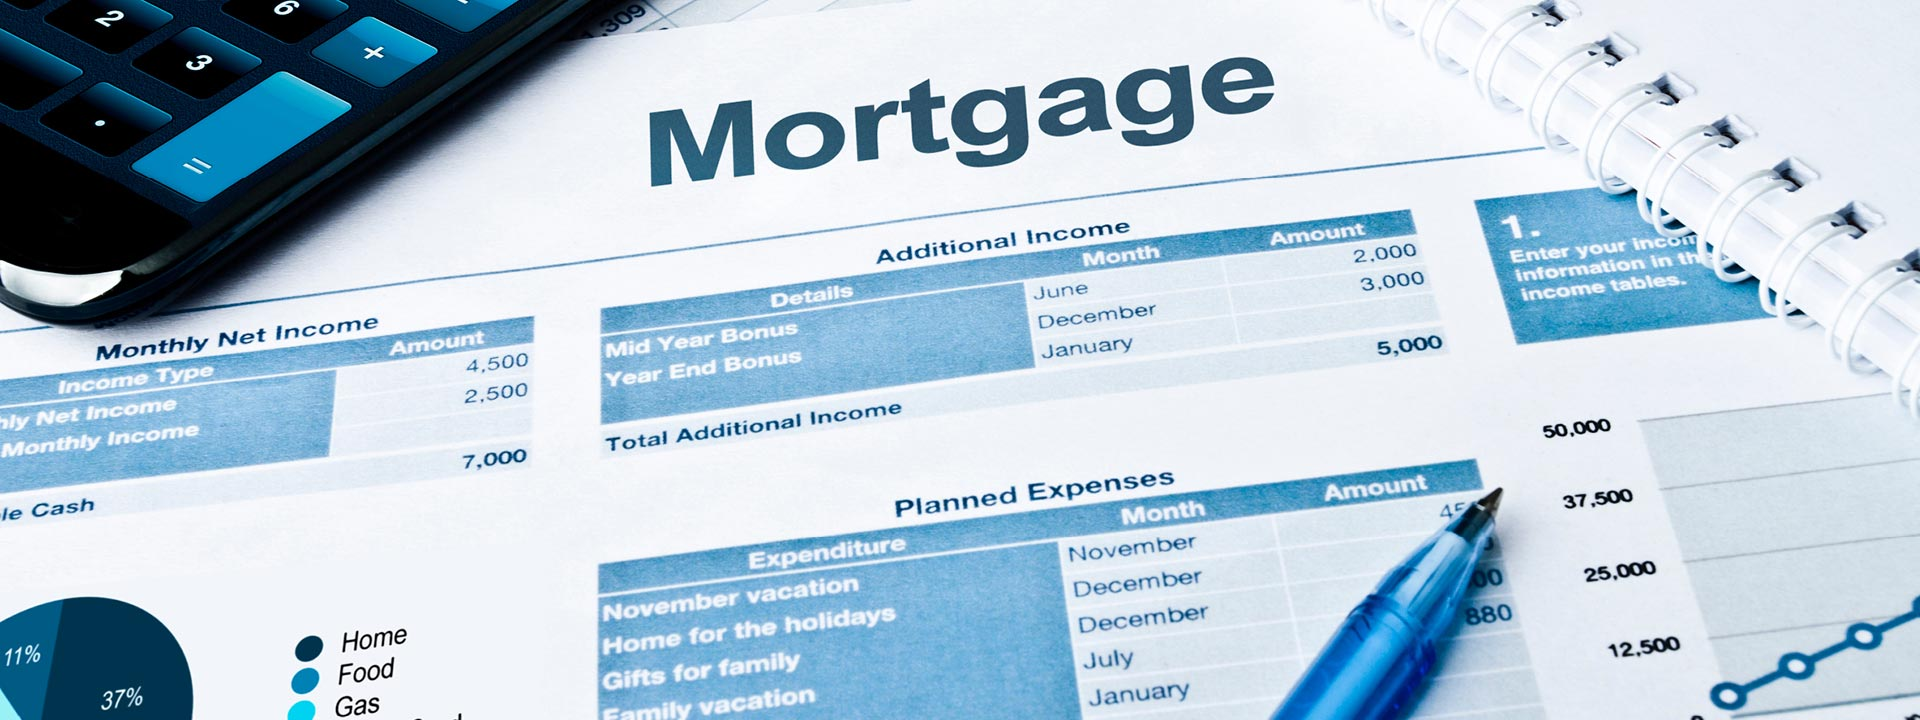 Purchase Mortgage - An Overview